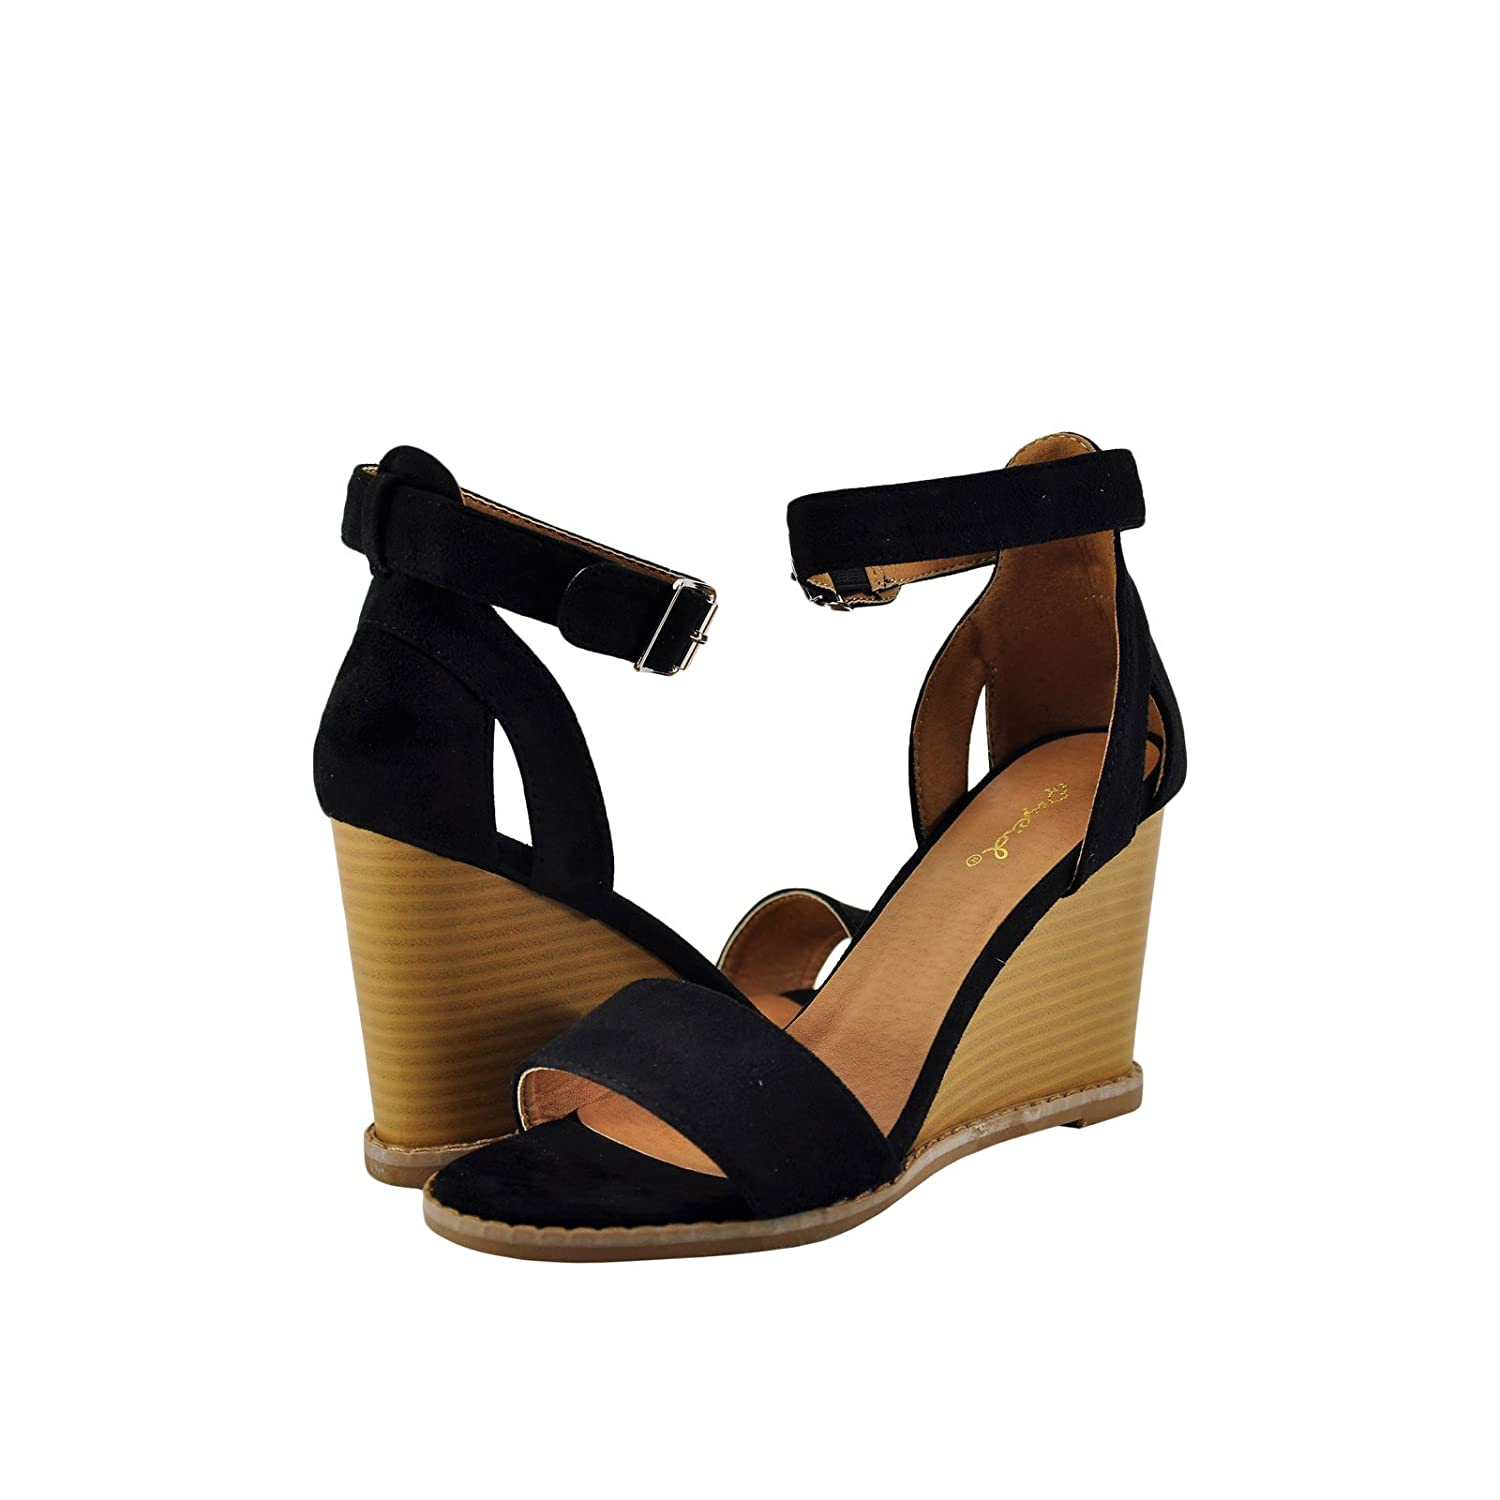 7a2785fa2bed11 ... Qupid Finley 01 Women s Open Toe Toe Toe Ankle Strap Stacked Wedge  B076VG986V 6 B(